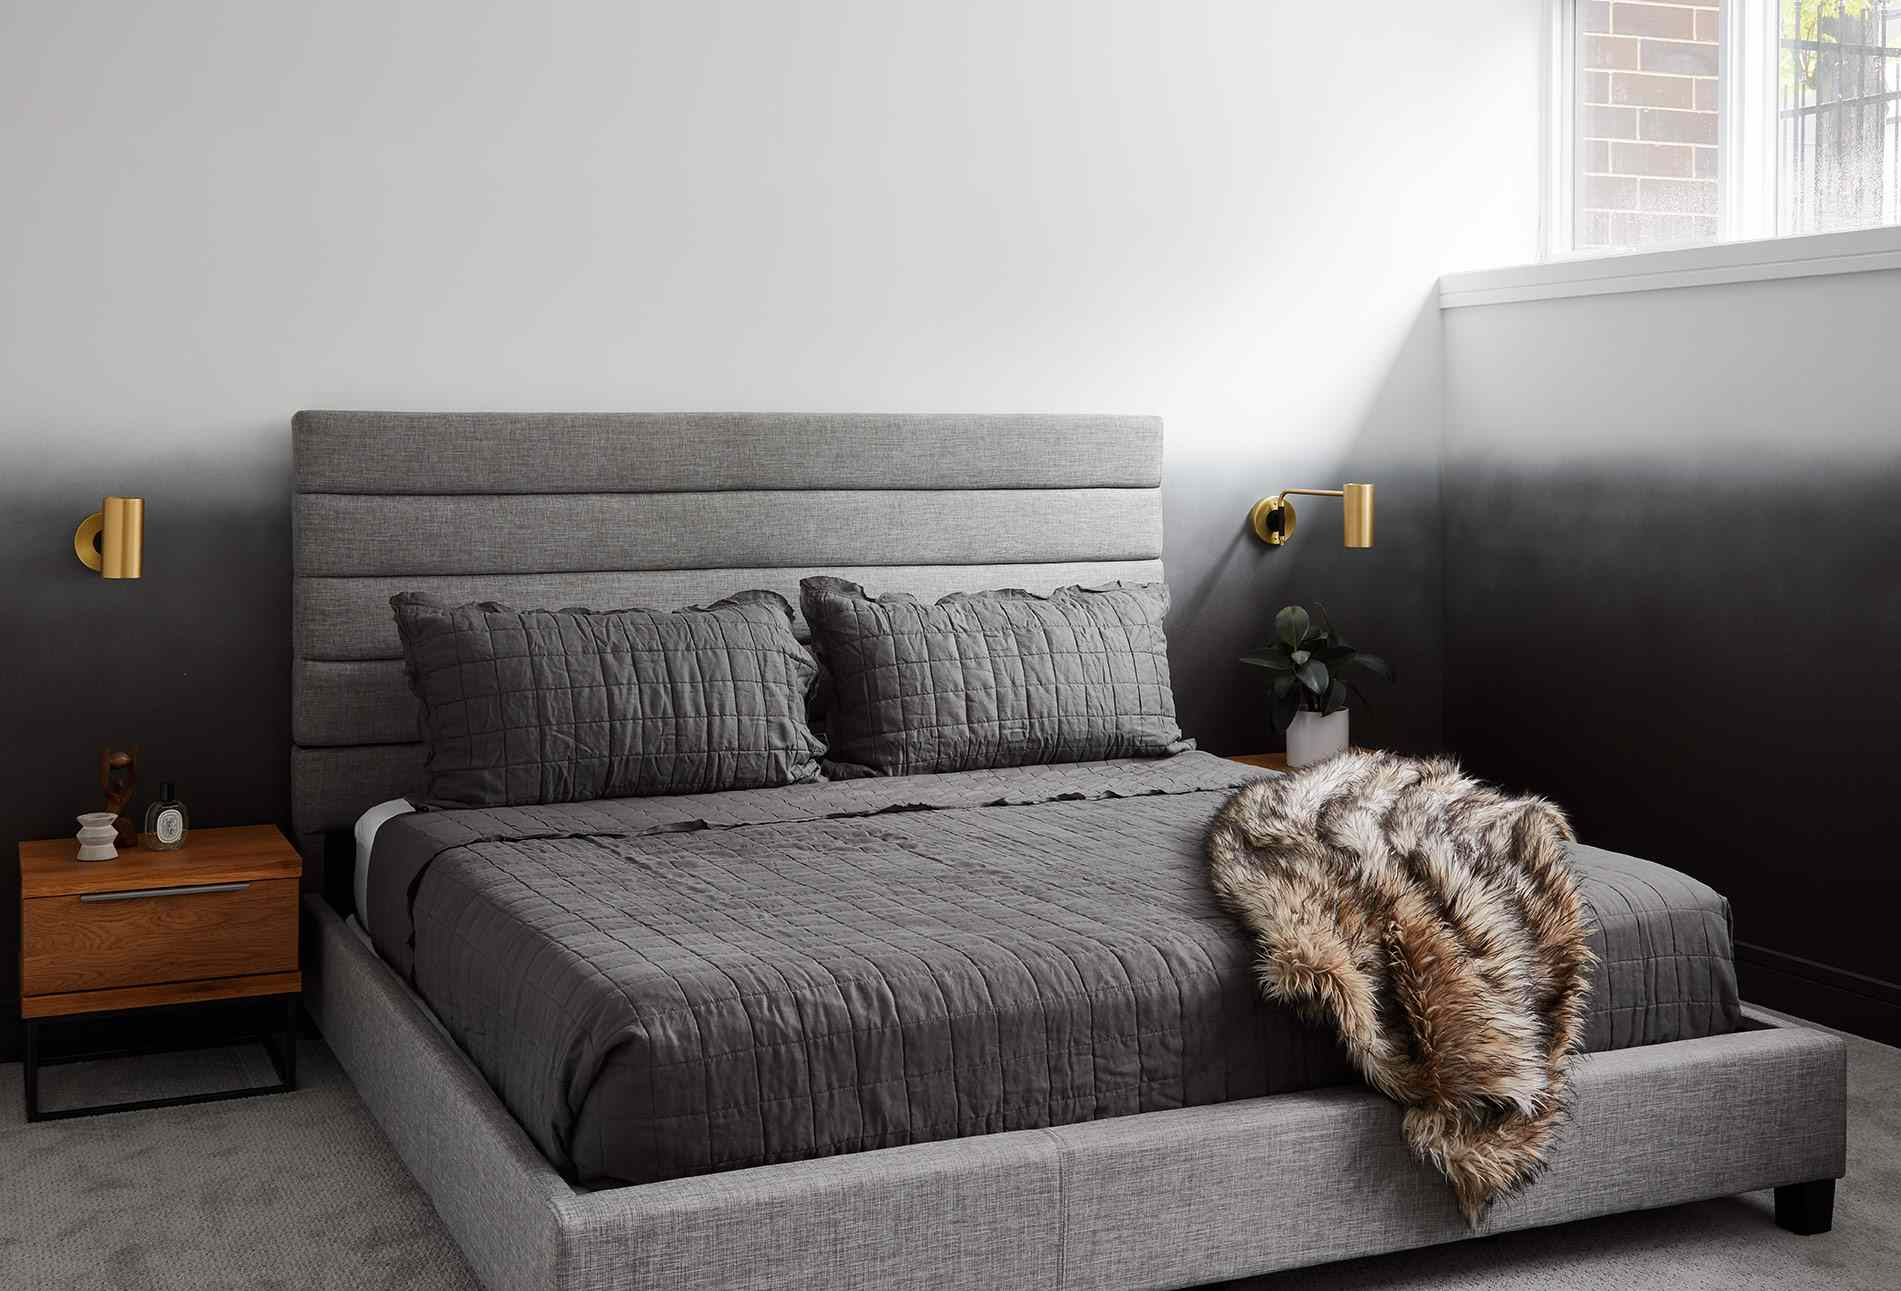 Bedroom with ombre gray walls and gray bedding